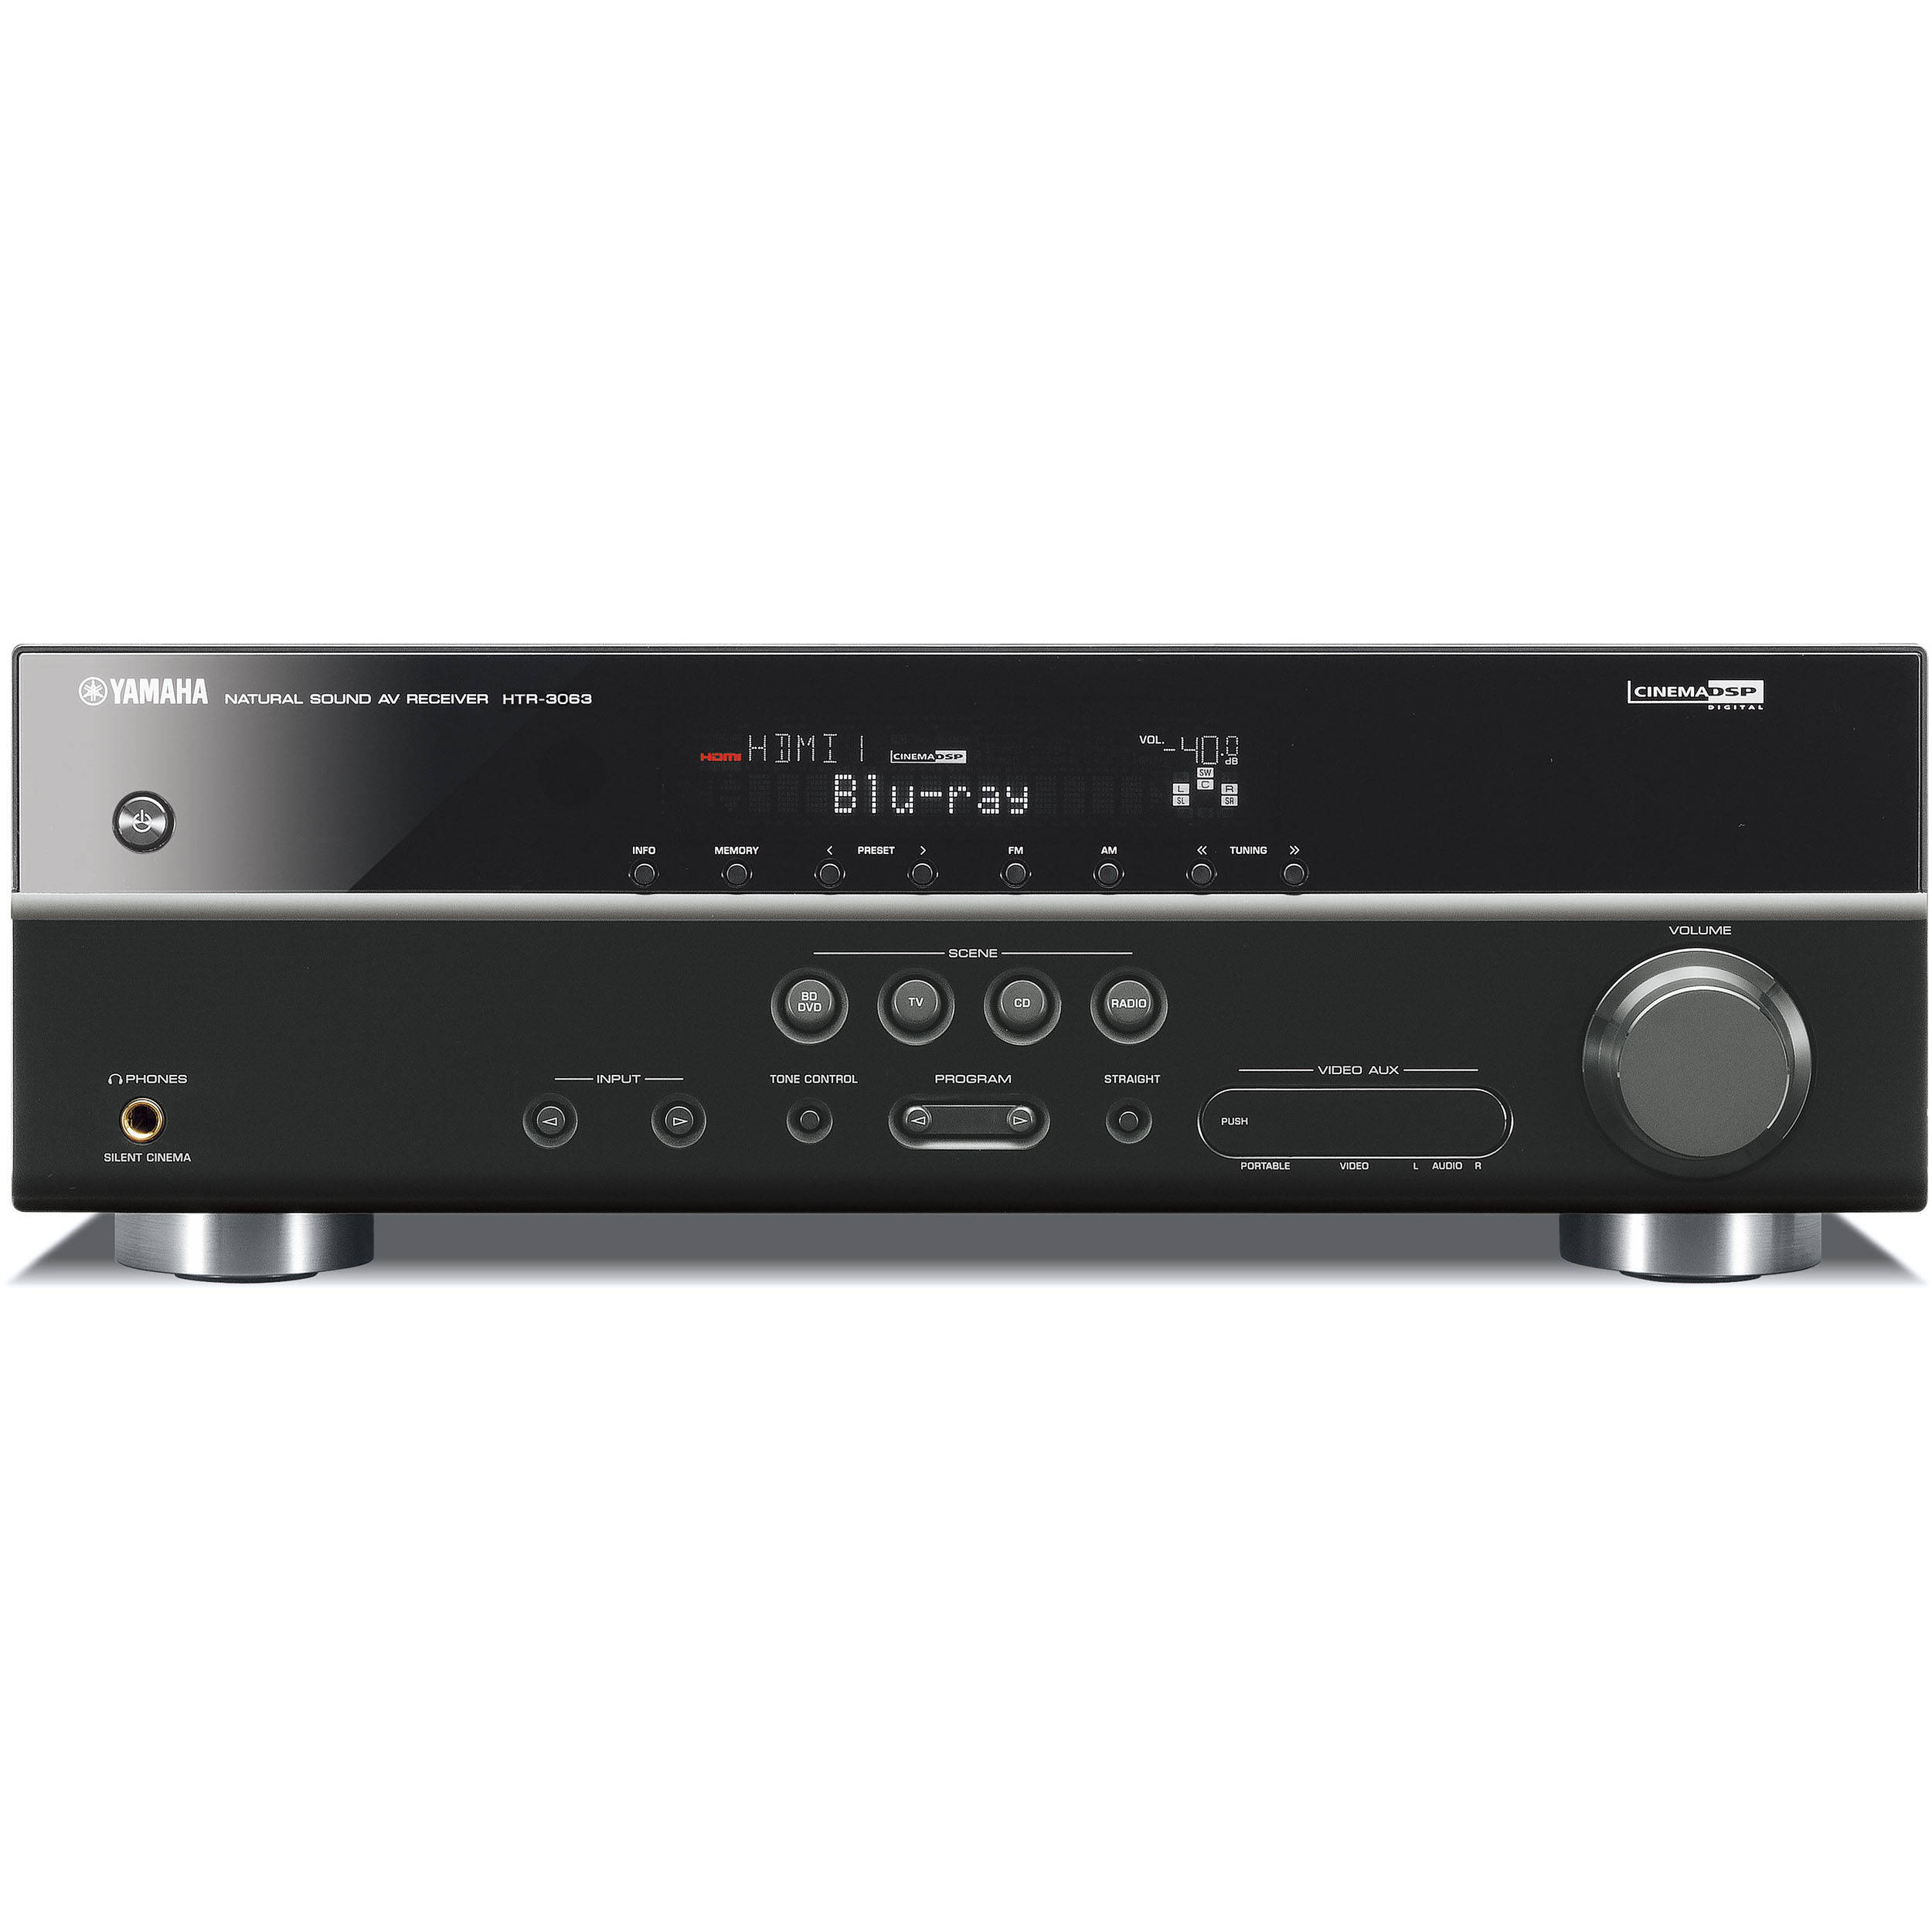 Yamaha HTR-3063 5 1 Channel Home Theater Receiver